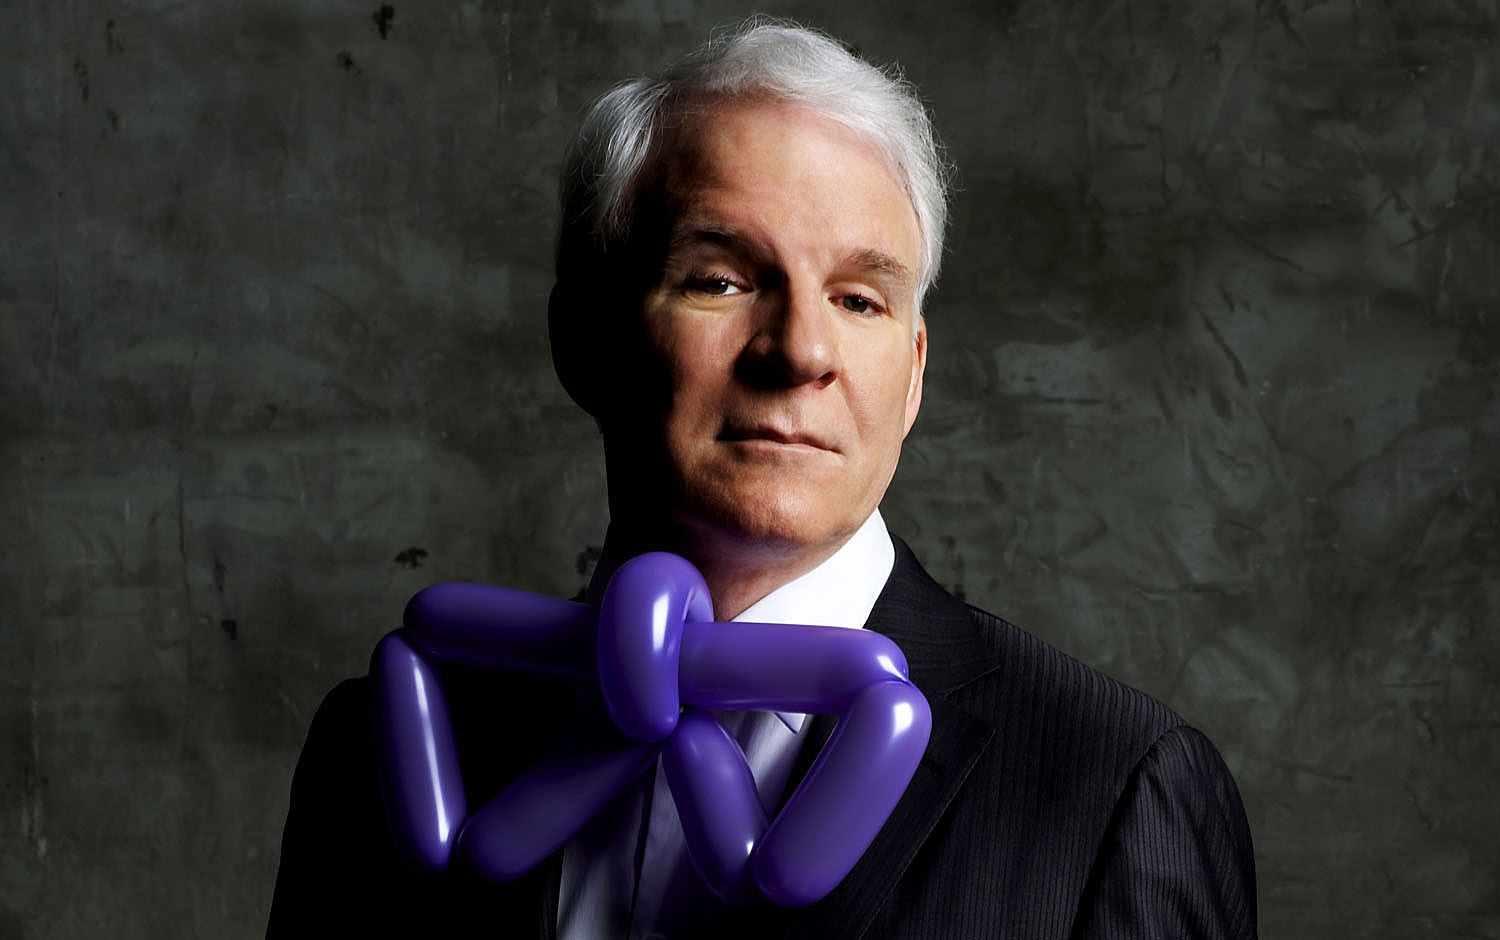 steve martin familysteve martin movies, steve martin young, steve martin 2016, steve martin films, steve martin wiki, steve martin king tut, steve martin dentist, steve martin filmography, steve martin family, steve martin 2017, steve martin daughter, steve martin carrie fisher, steve martin dance, steve martin stand up, steve martin net worth, steve martin hamburger scene, steve martin excuse me, steve martin son, steve martin los angeles, steve martin in the house tonight